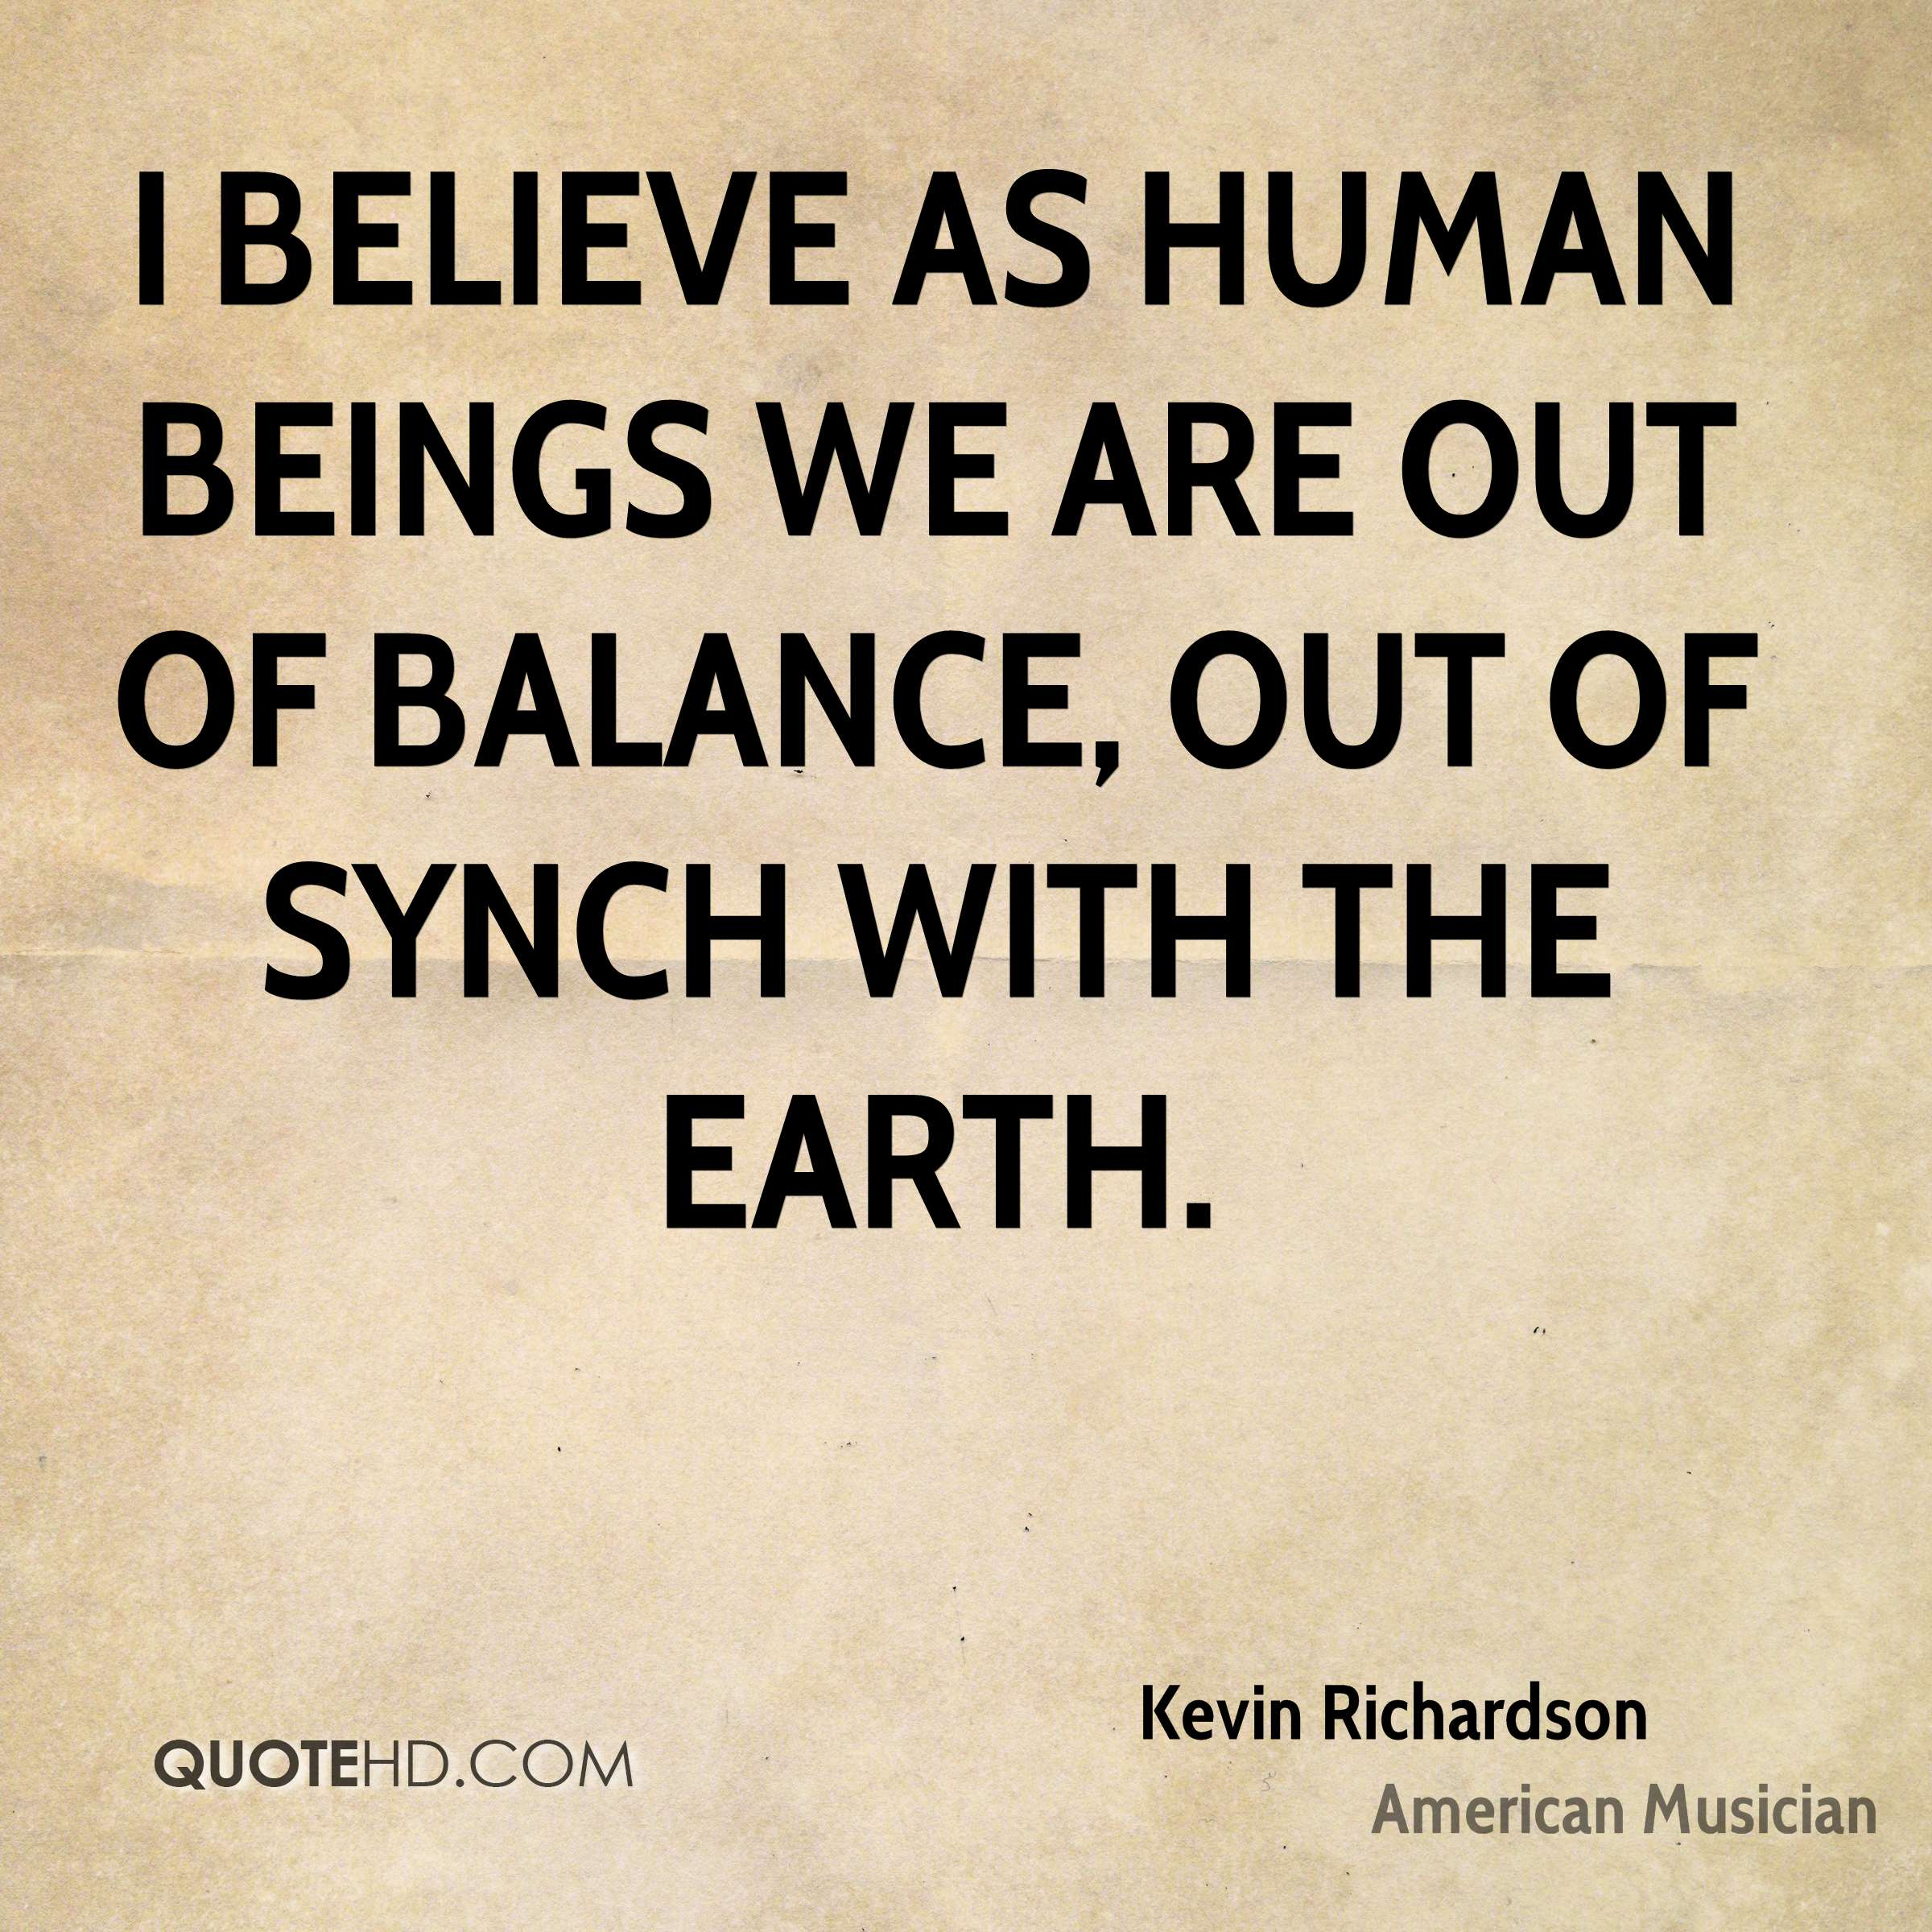 I believe as human beings we are out of balance, out of synch with the earth.